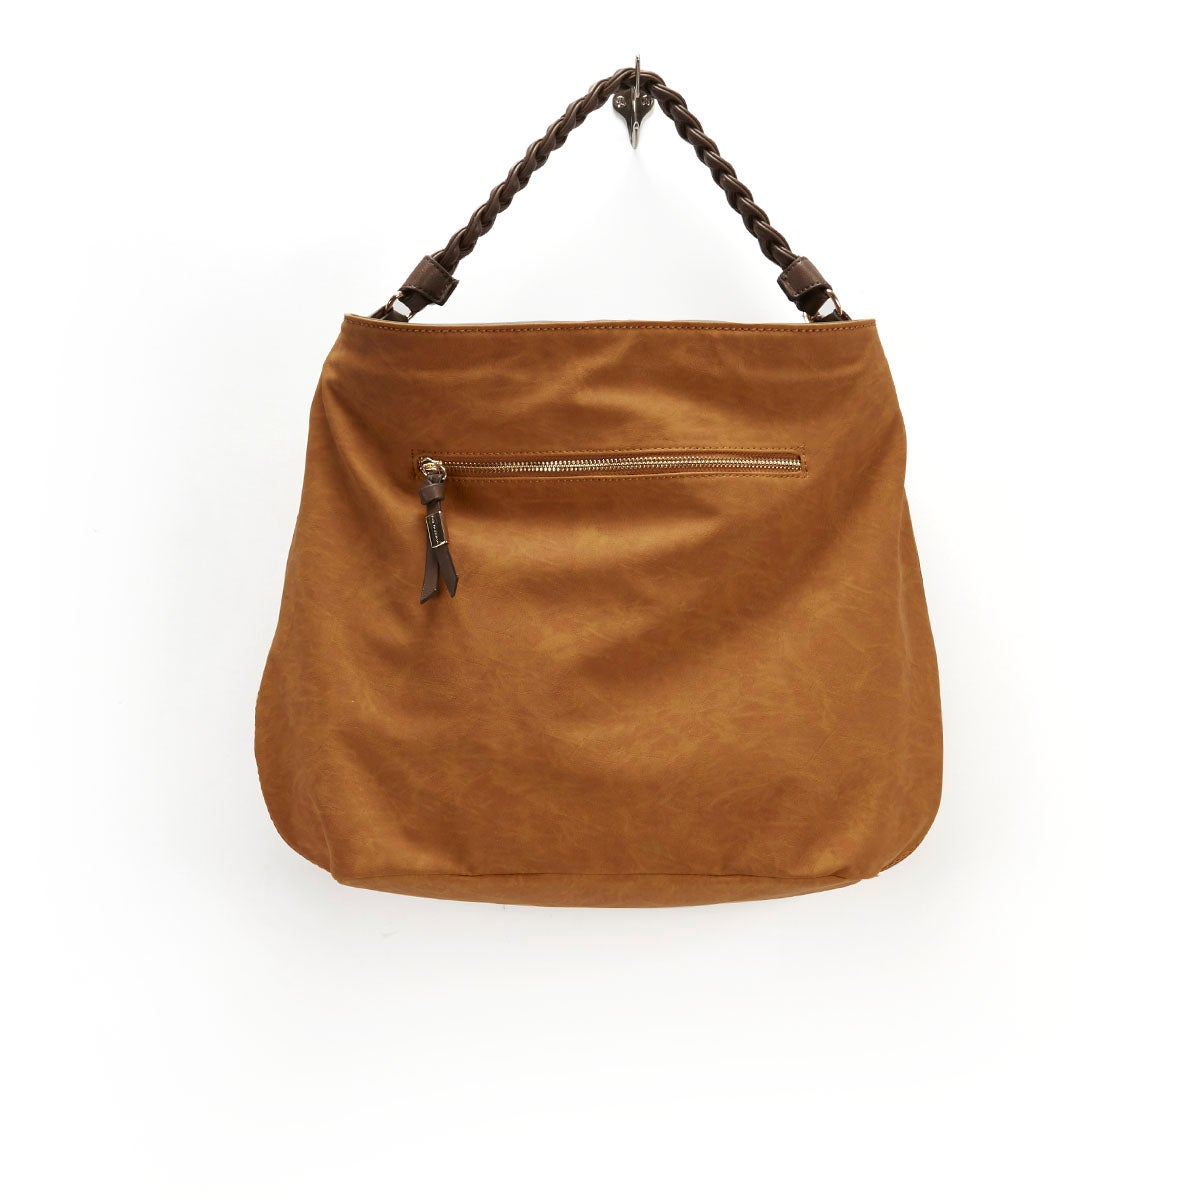 Lds JJaide tan laser cut hobo bag